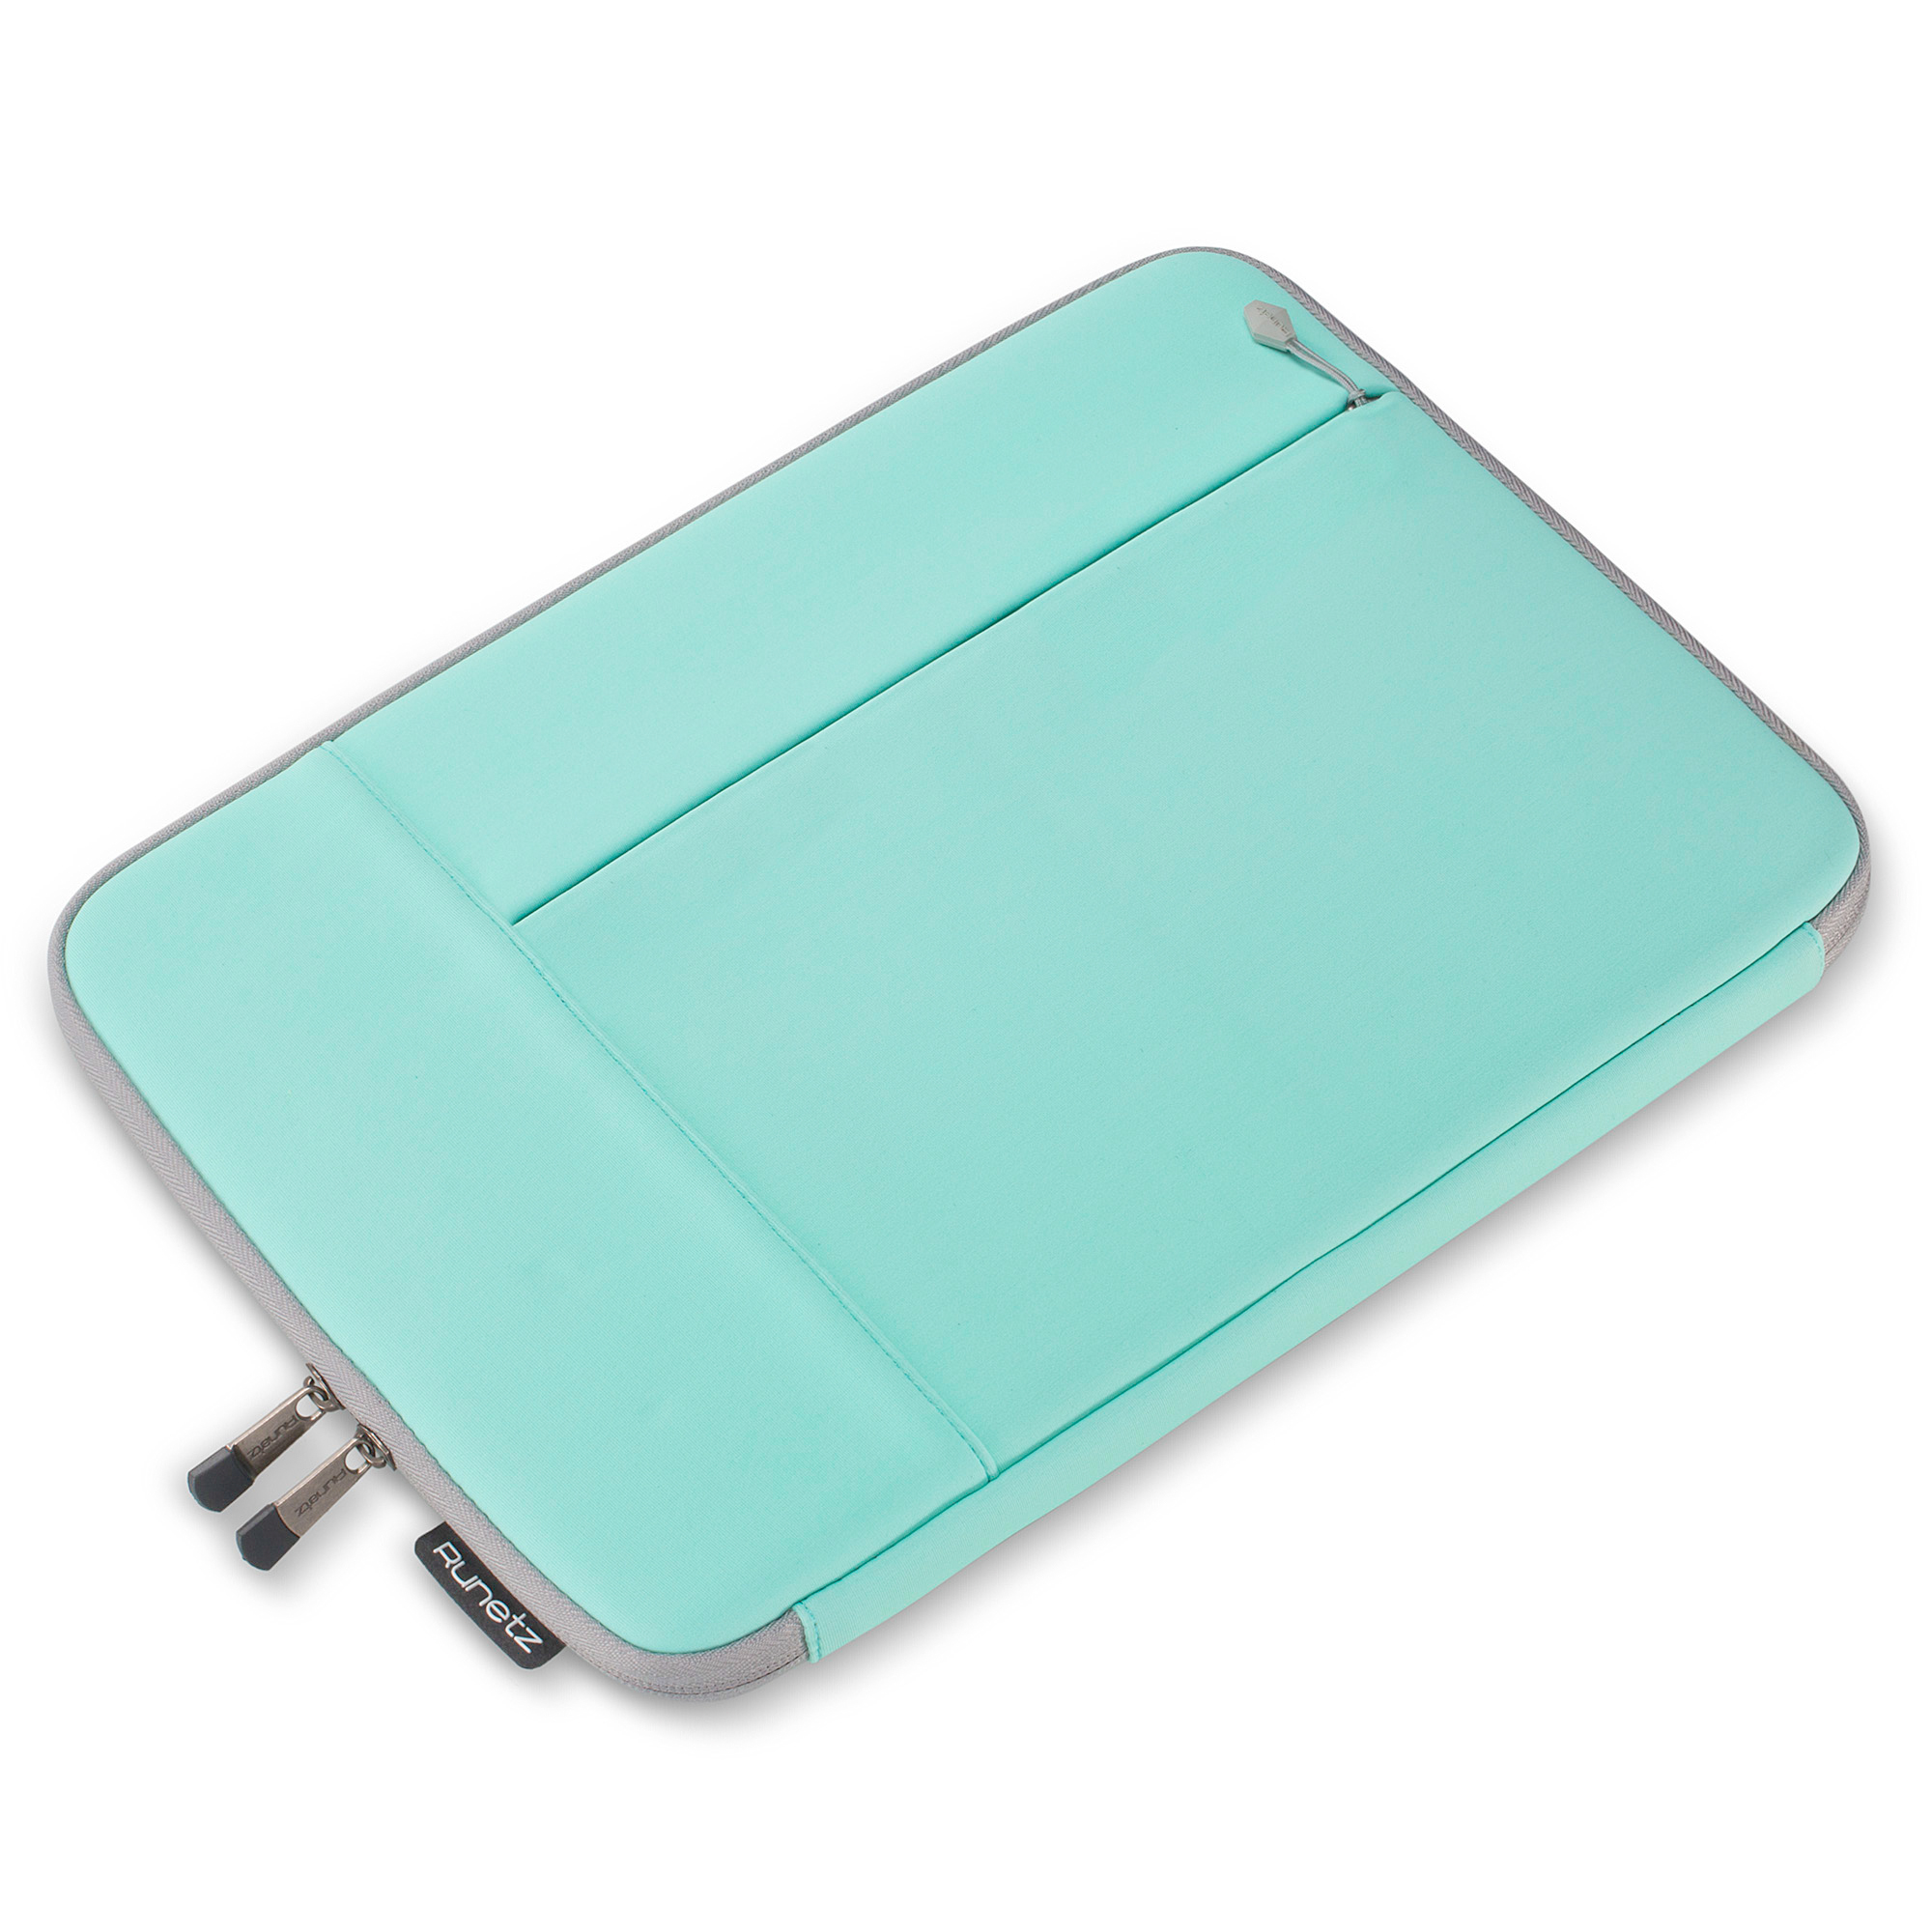 neoprene sleeve for macbook pro air cover 12 13 15 retina laptop 13 3 ebay